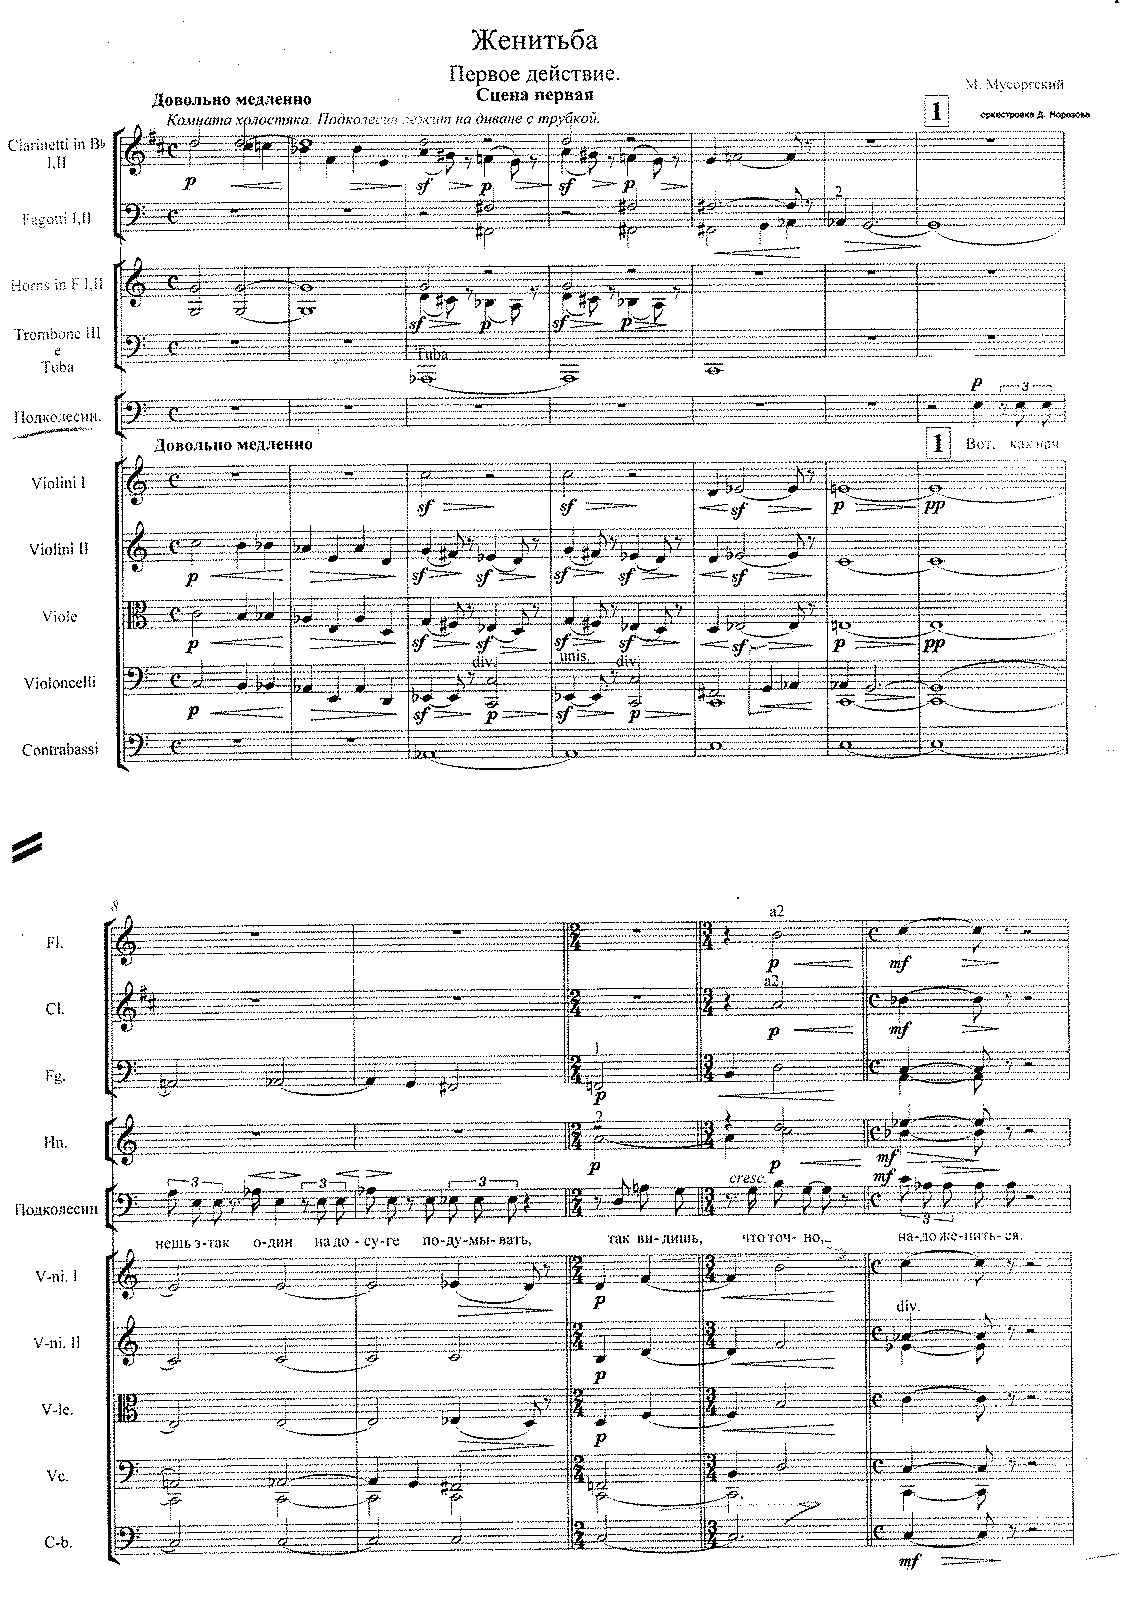 PMLP48967-Mussorgsky-Marriage full score (Morozov).pdf